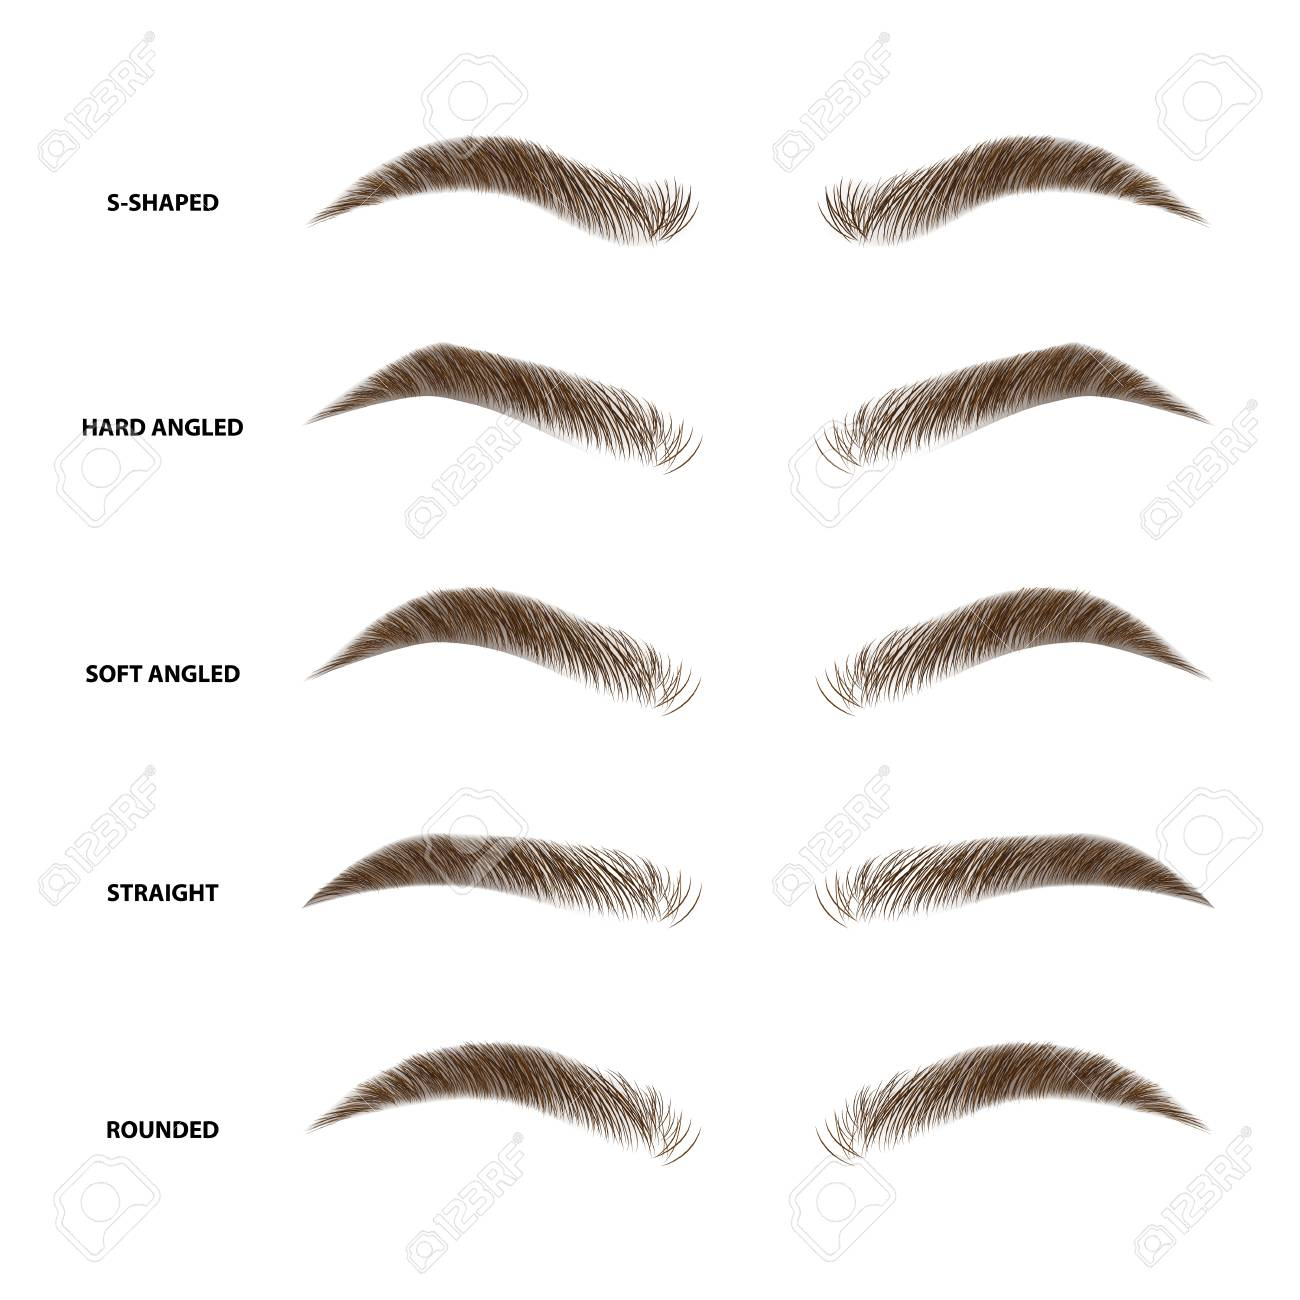 Types of eyebrows vector illustration - 100924434